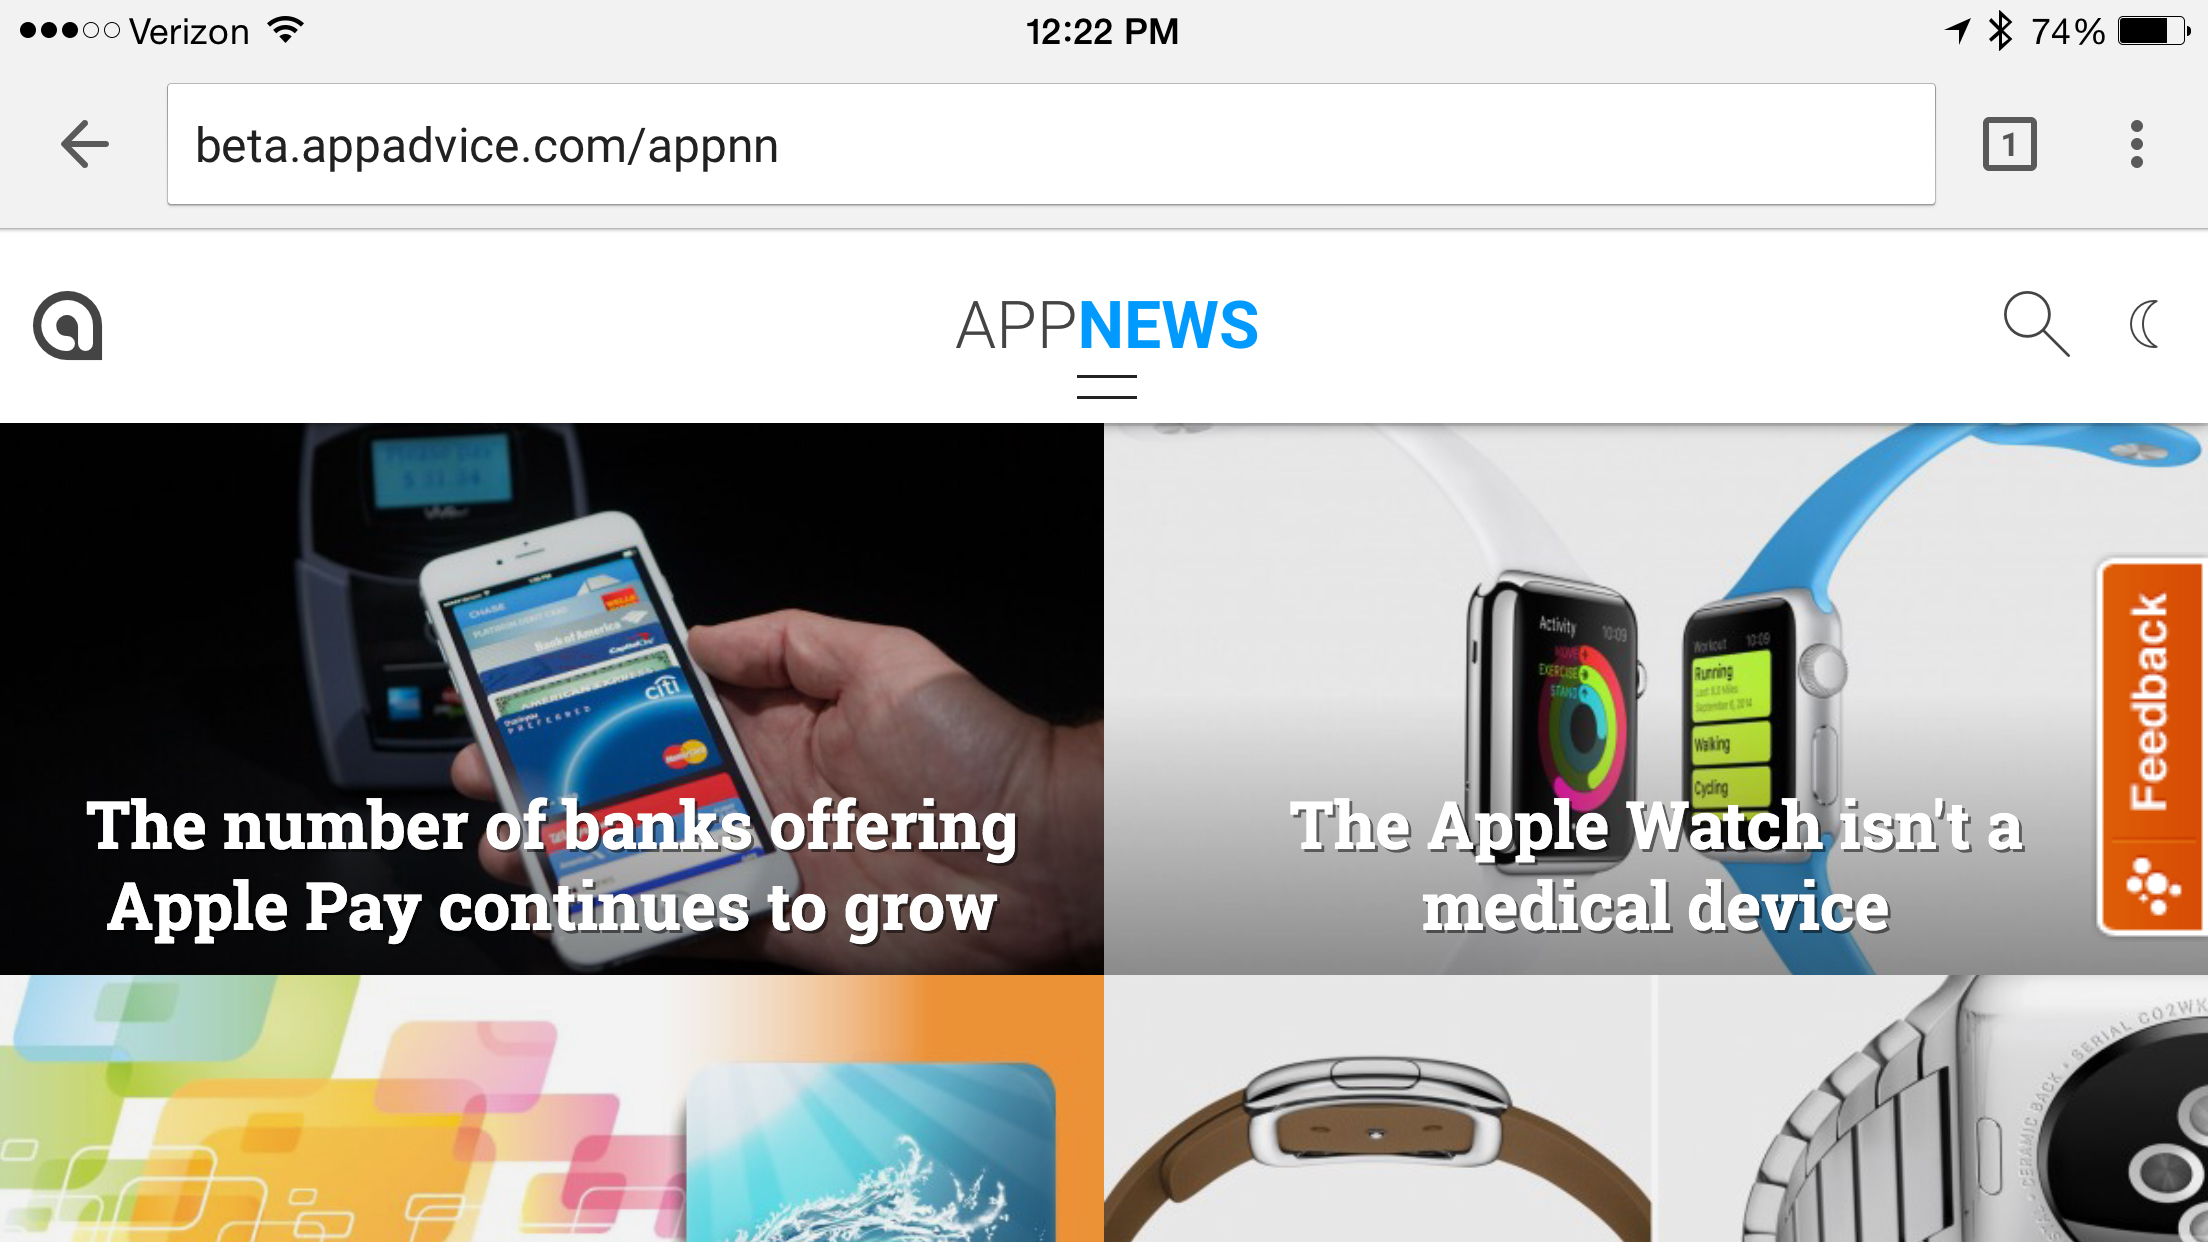 Chrome for iOS updated with iOS 8 optimization, Handoff support for OS X Yosemite and more